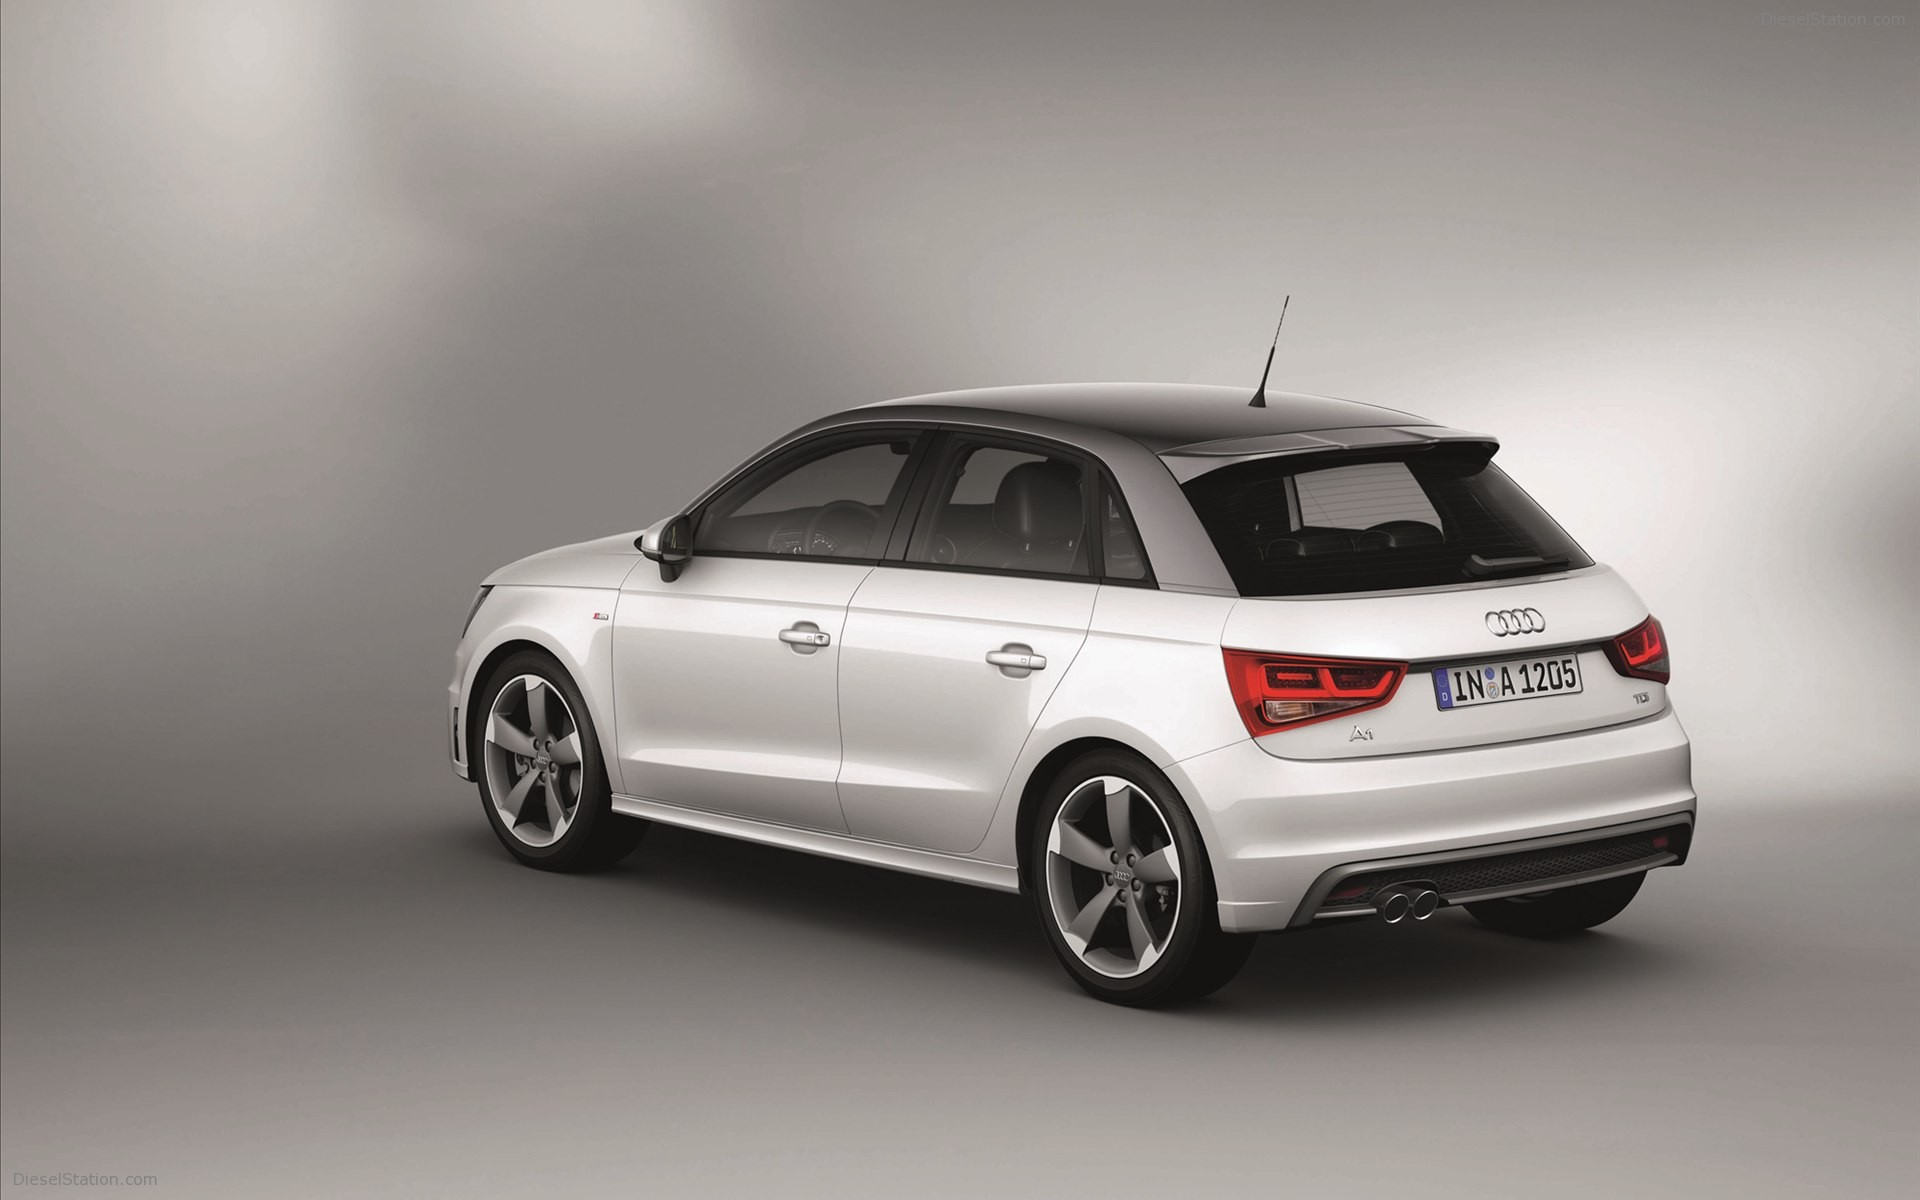 1920x1200 - Audi A1 Wallpapers 13